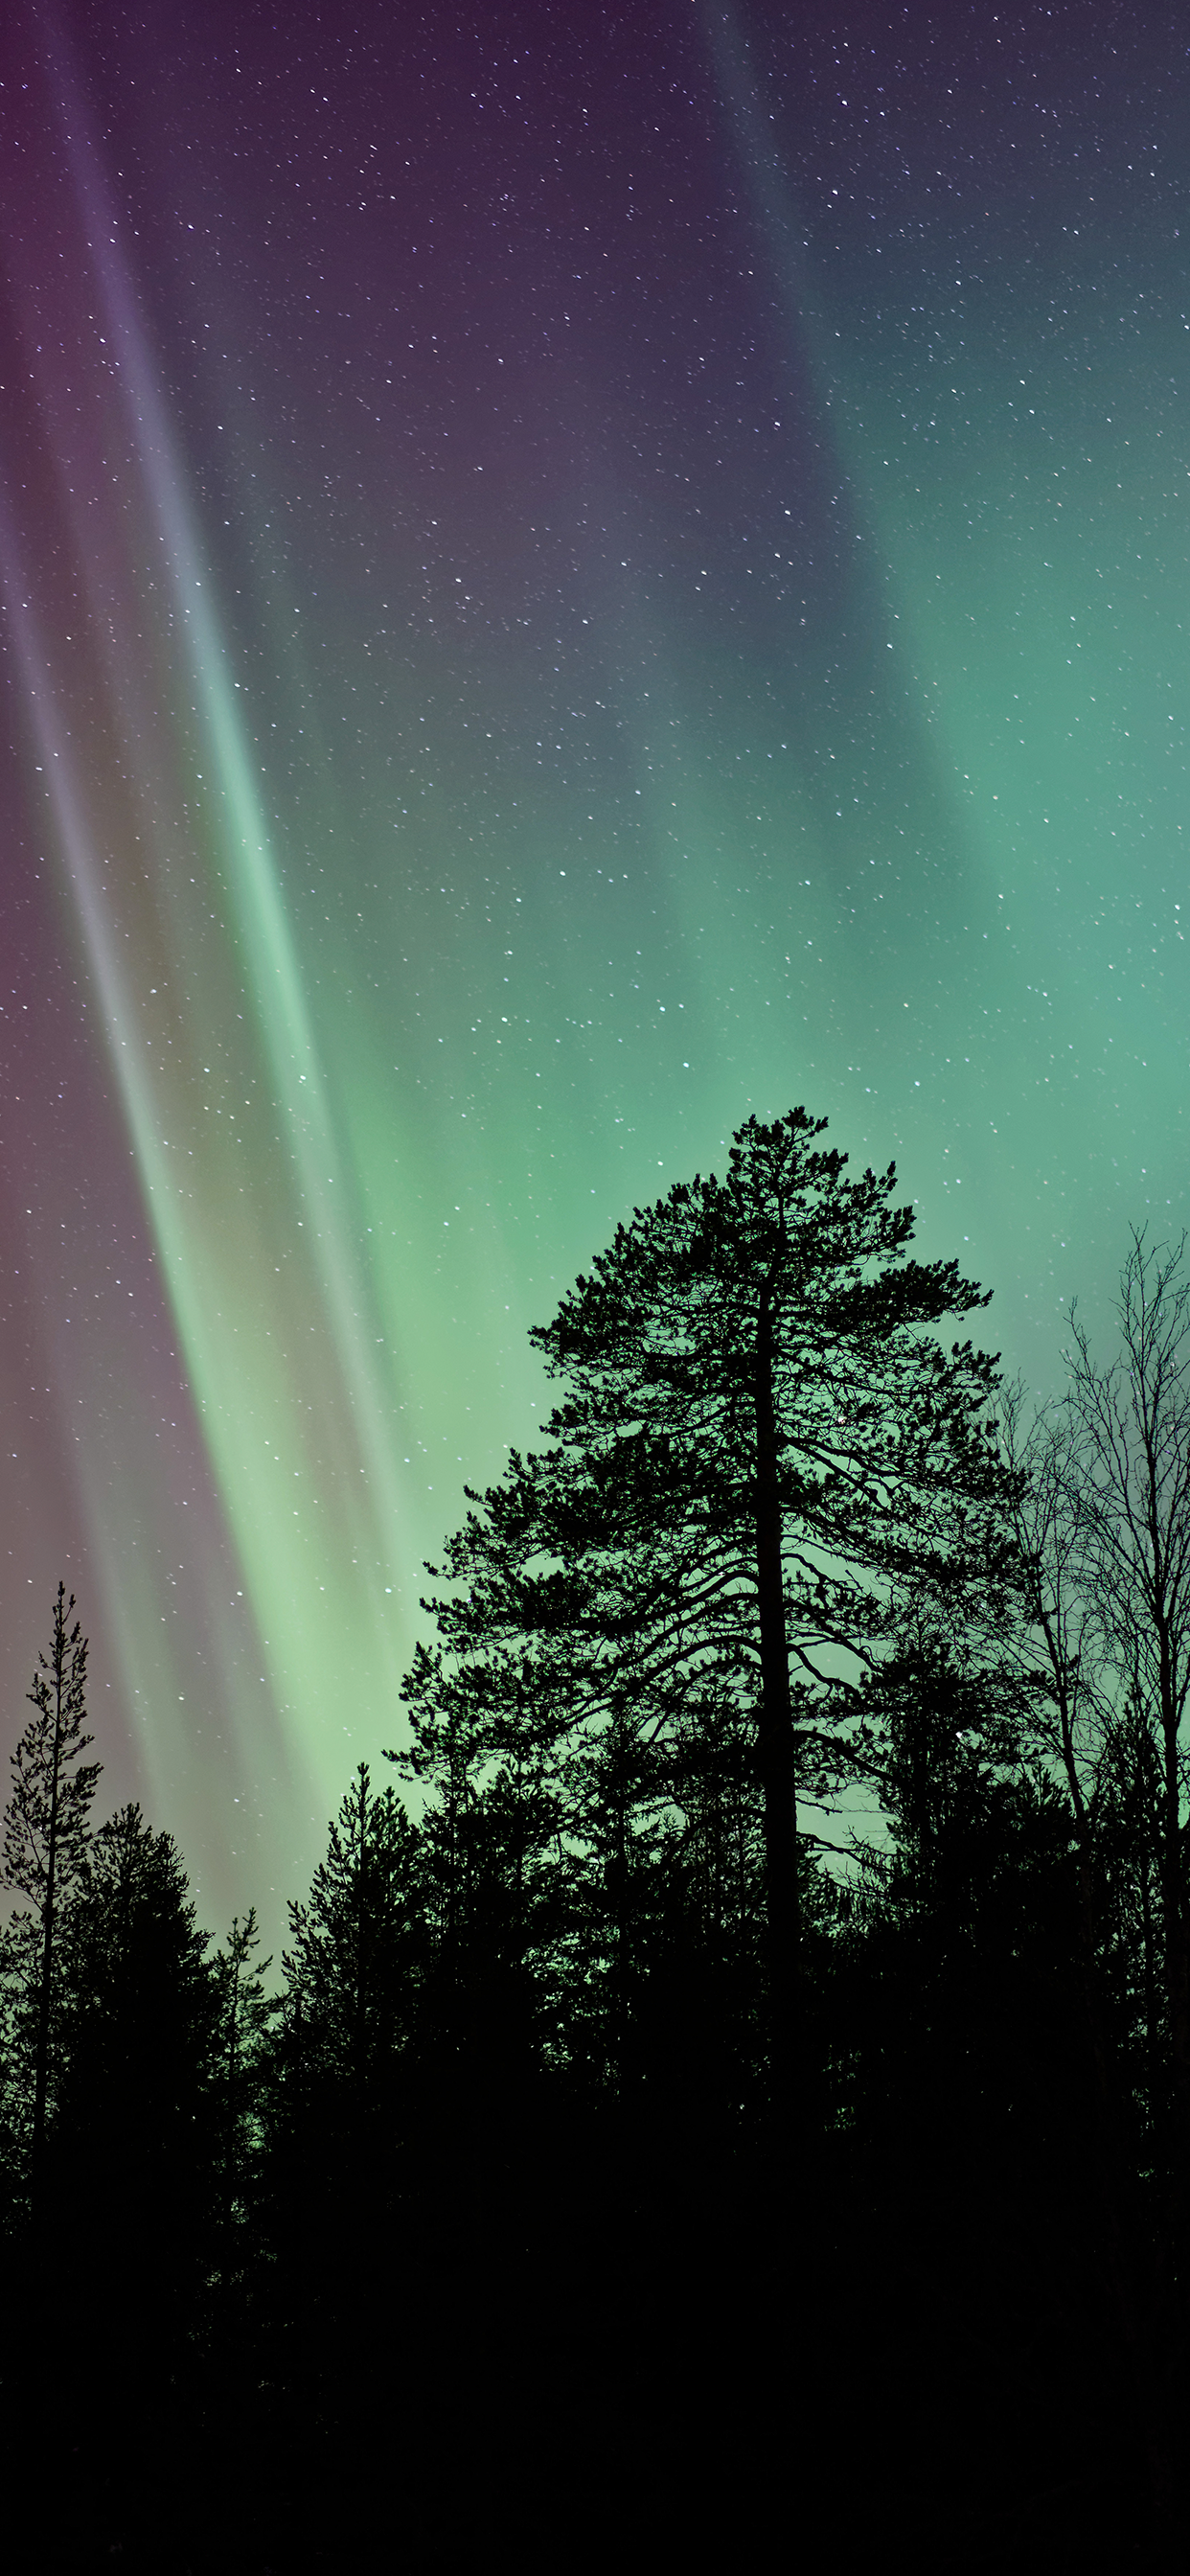 iPhone wallpaper aurora borealis trees Northern Lights